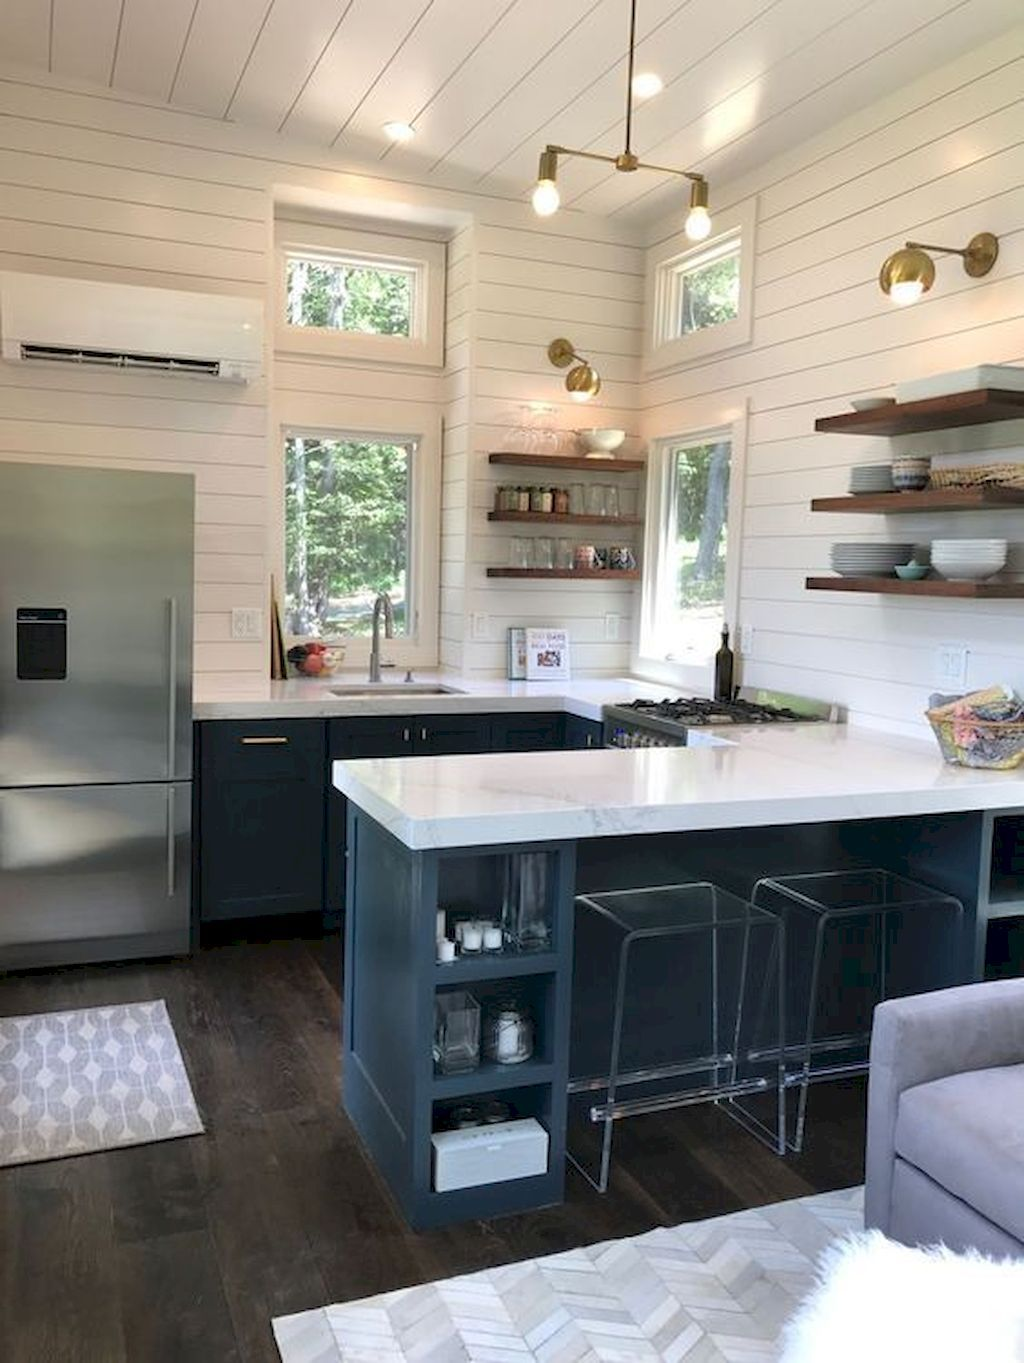 65 Cool Tiny House Interior Design Ideas Small Kitchen Layouts